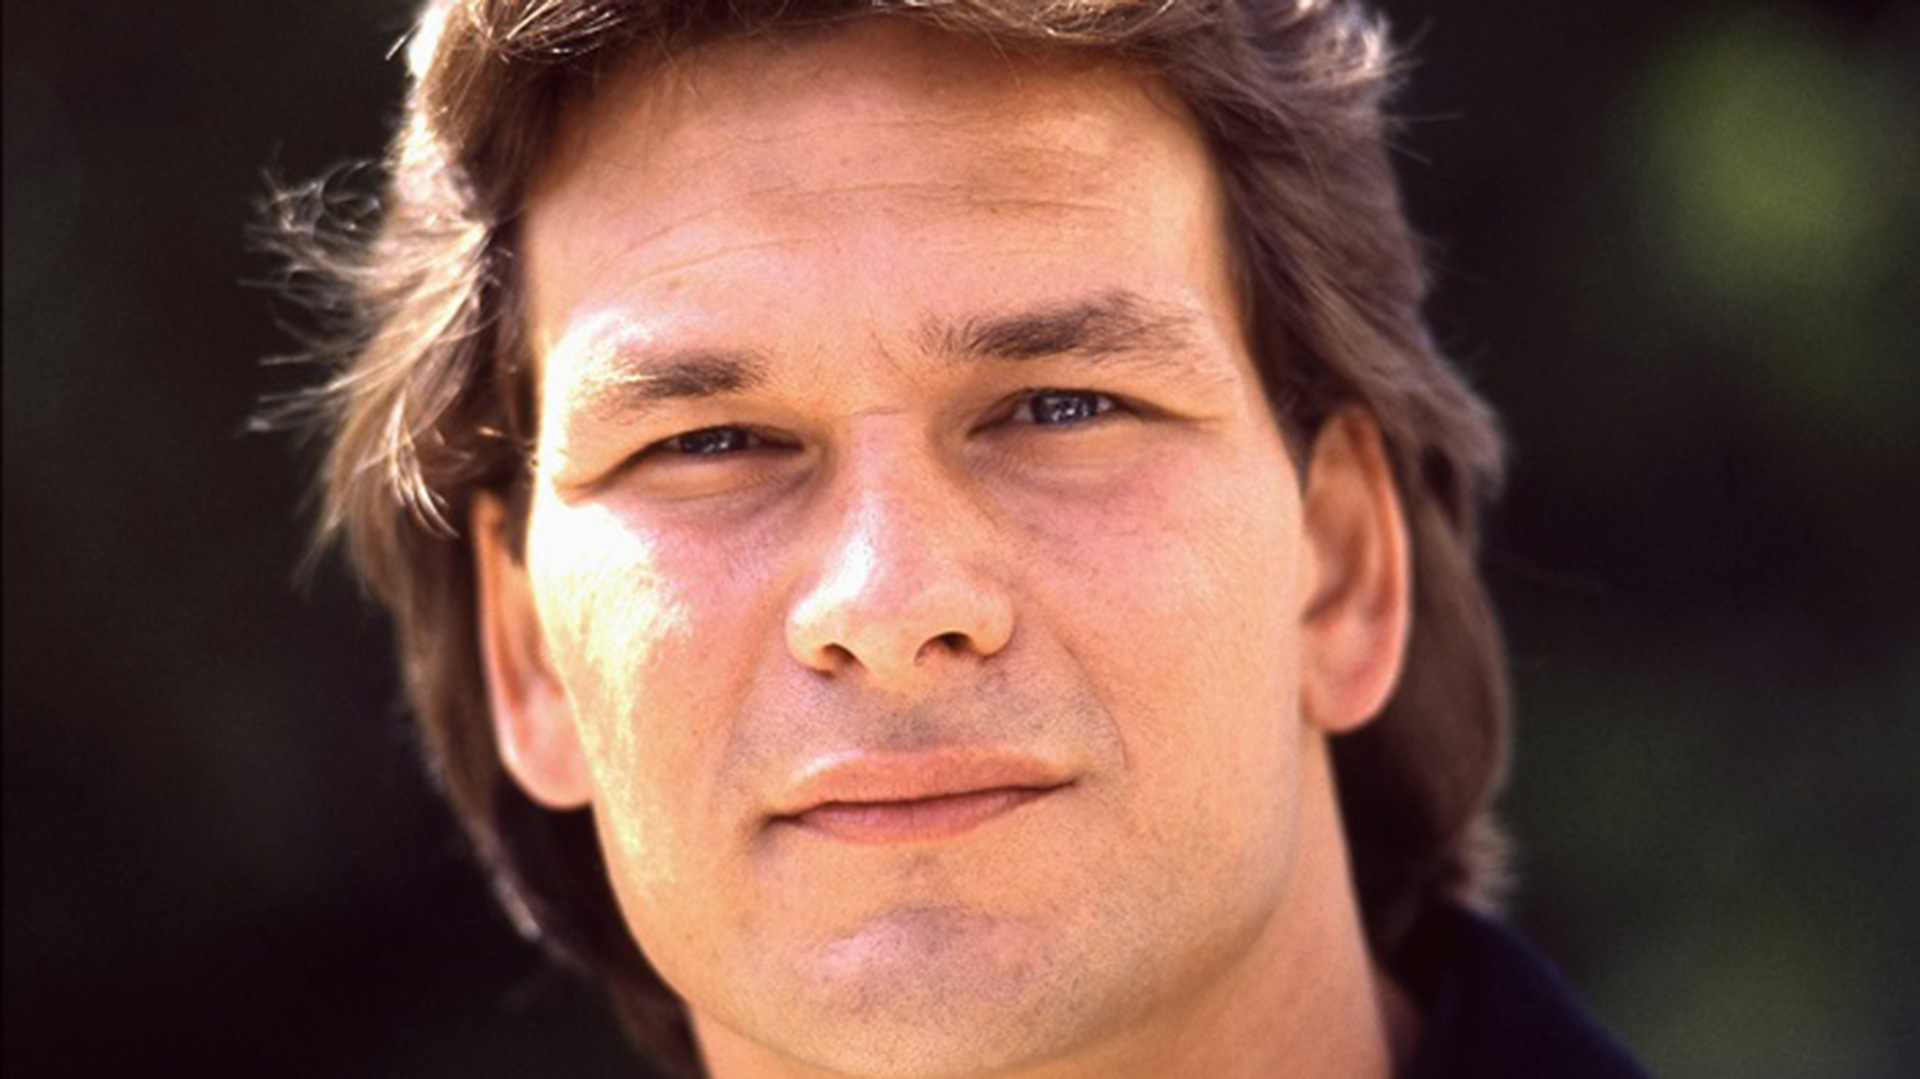 mix 5411 patrik Swayze 1920 (12)